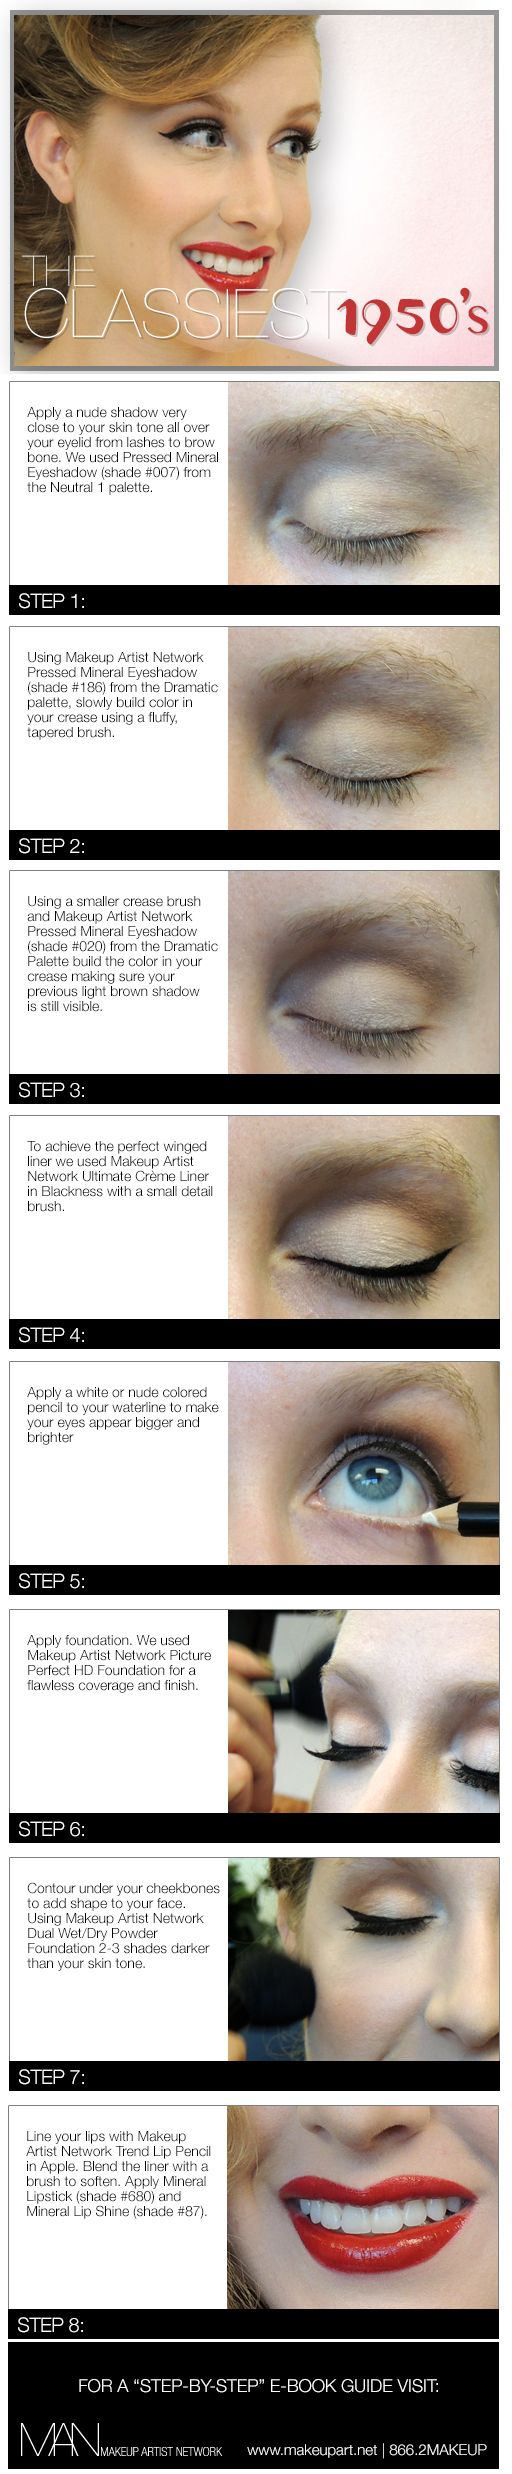 The Classiest 1950's Makeup